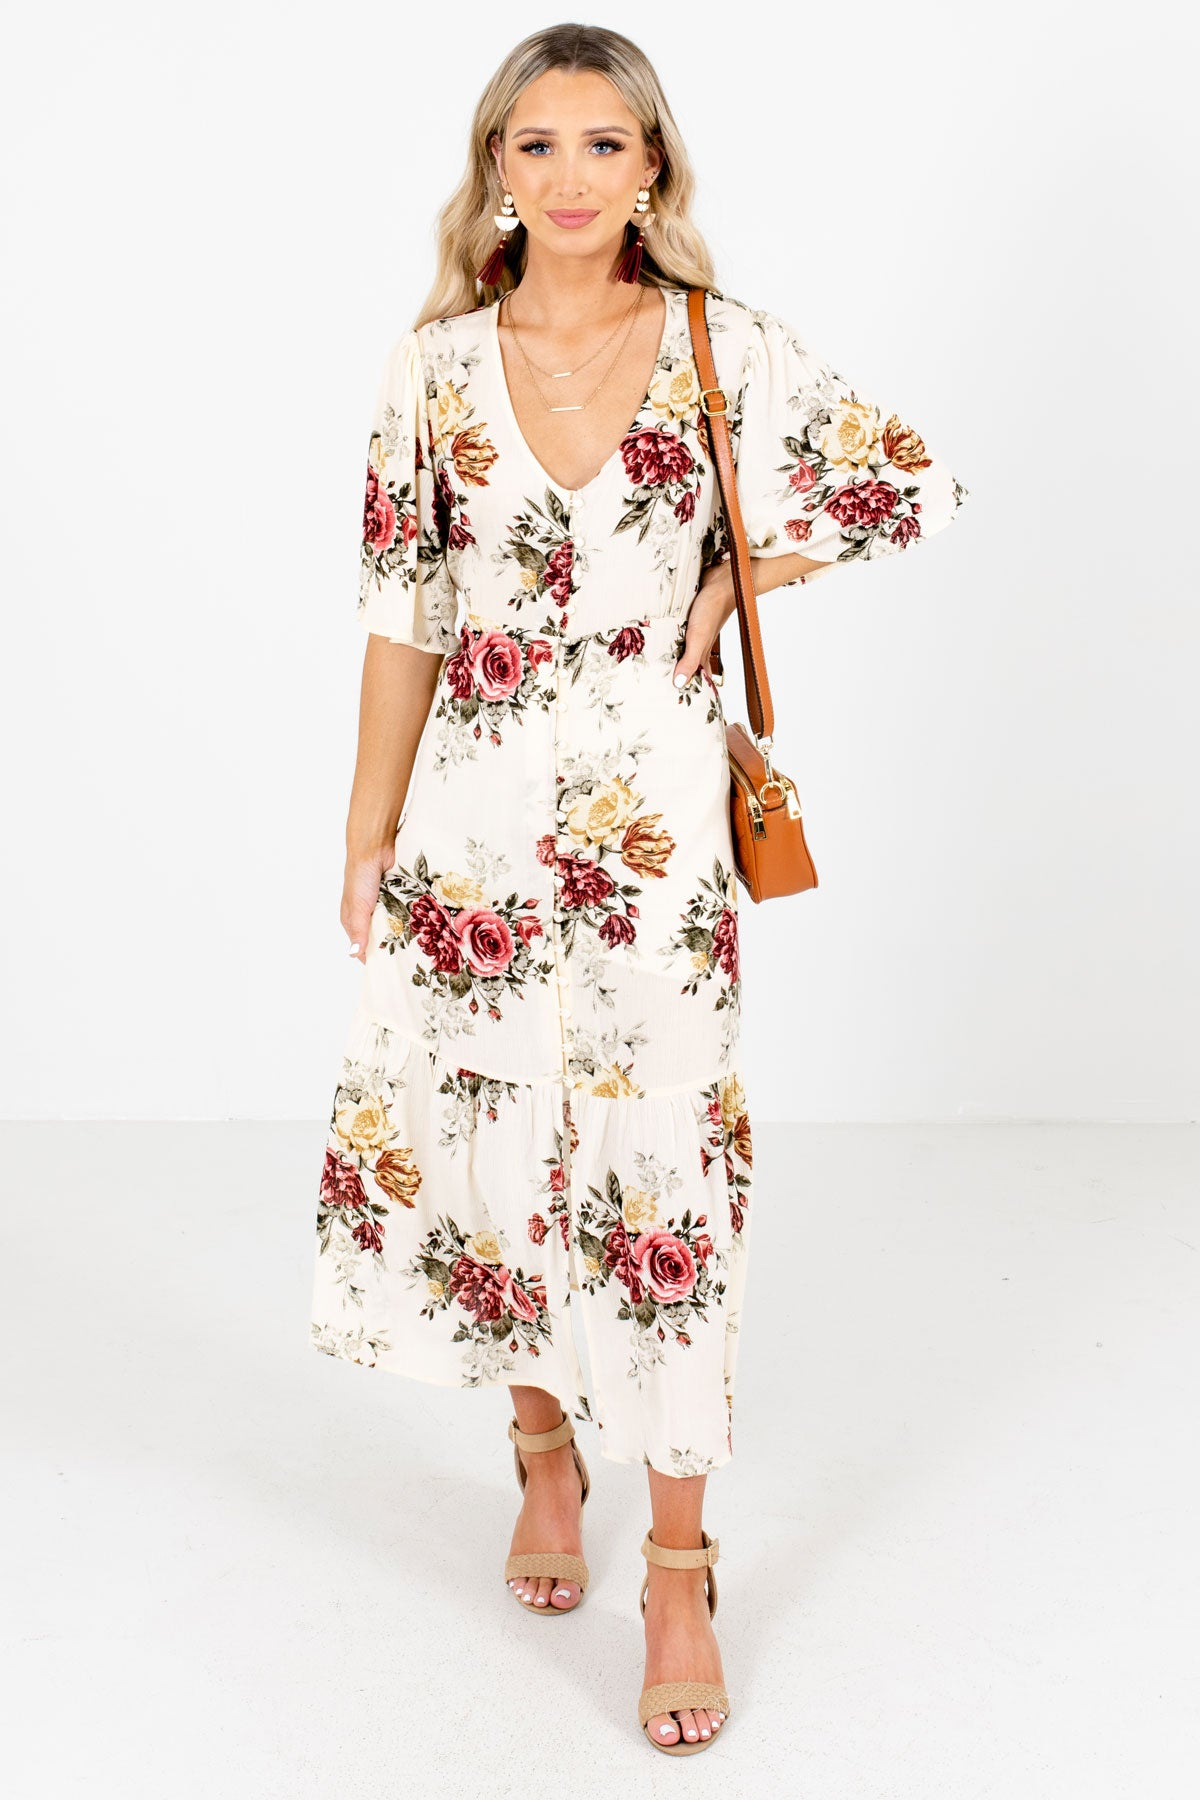 Cream Multicolored Floral Patterned Boutique Maxi Dresses for Women